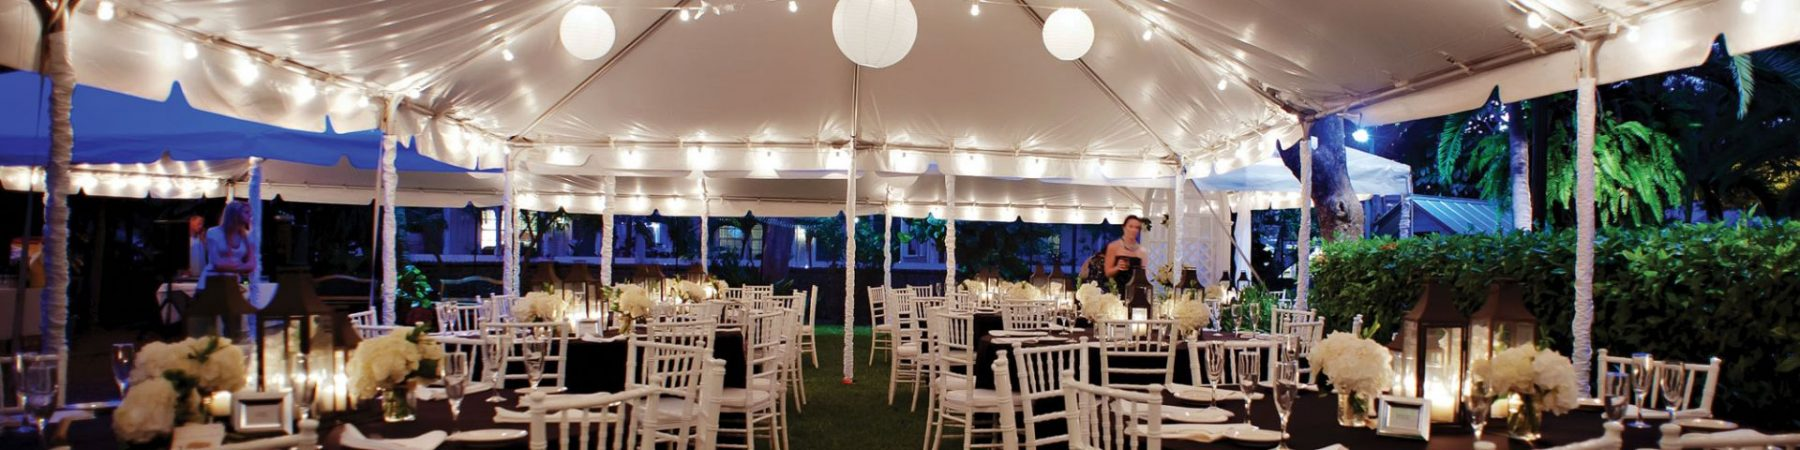 tabel, tent, and chair rentals